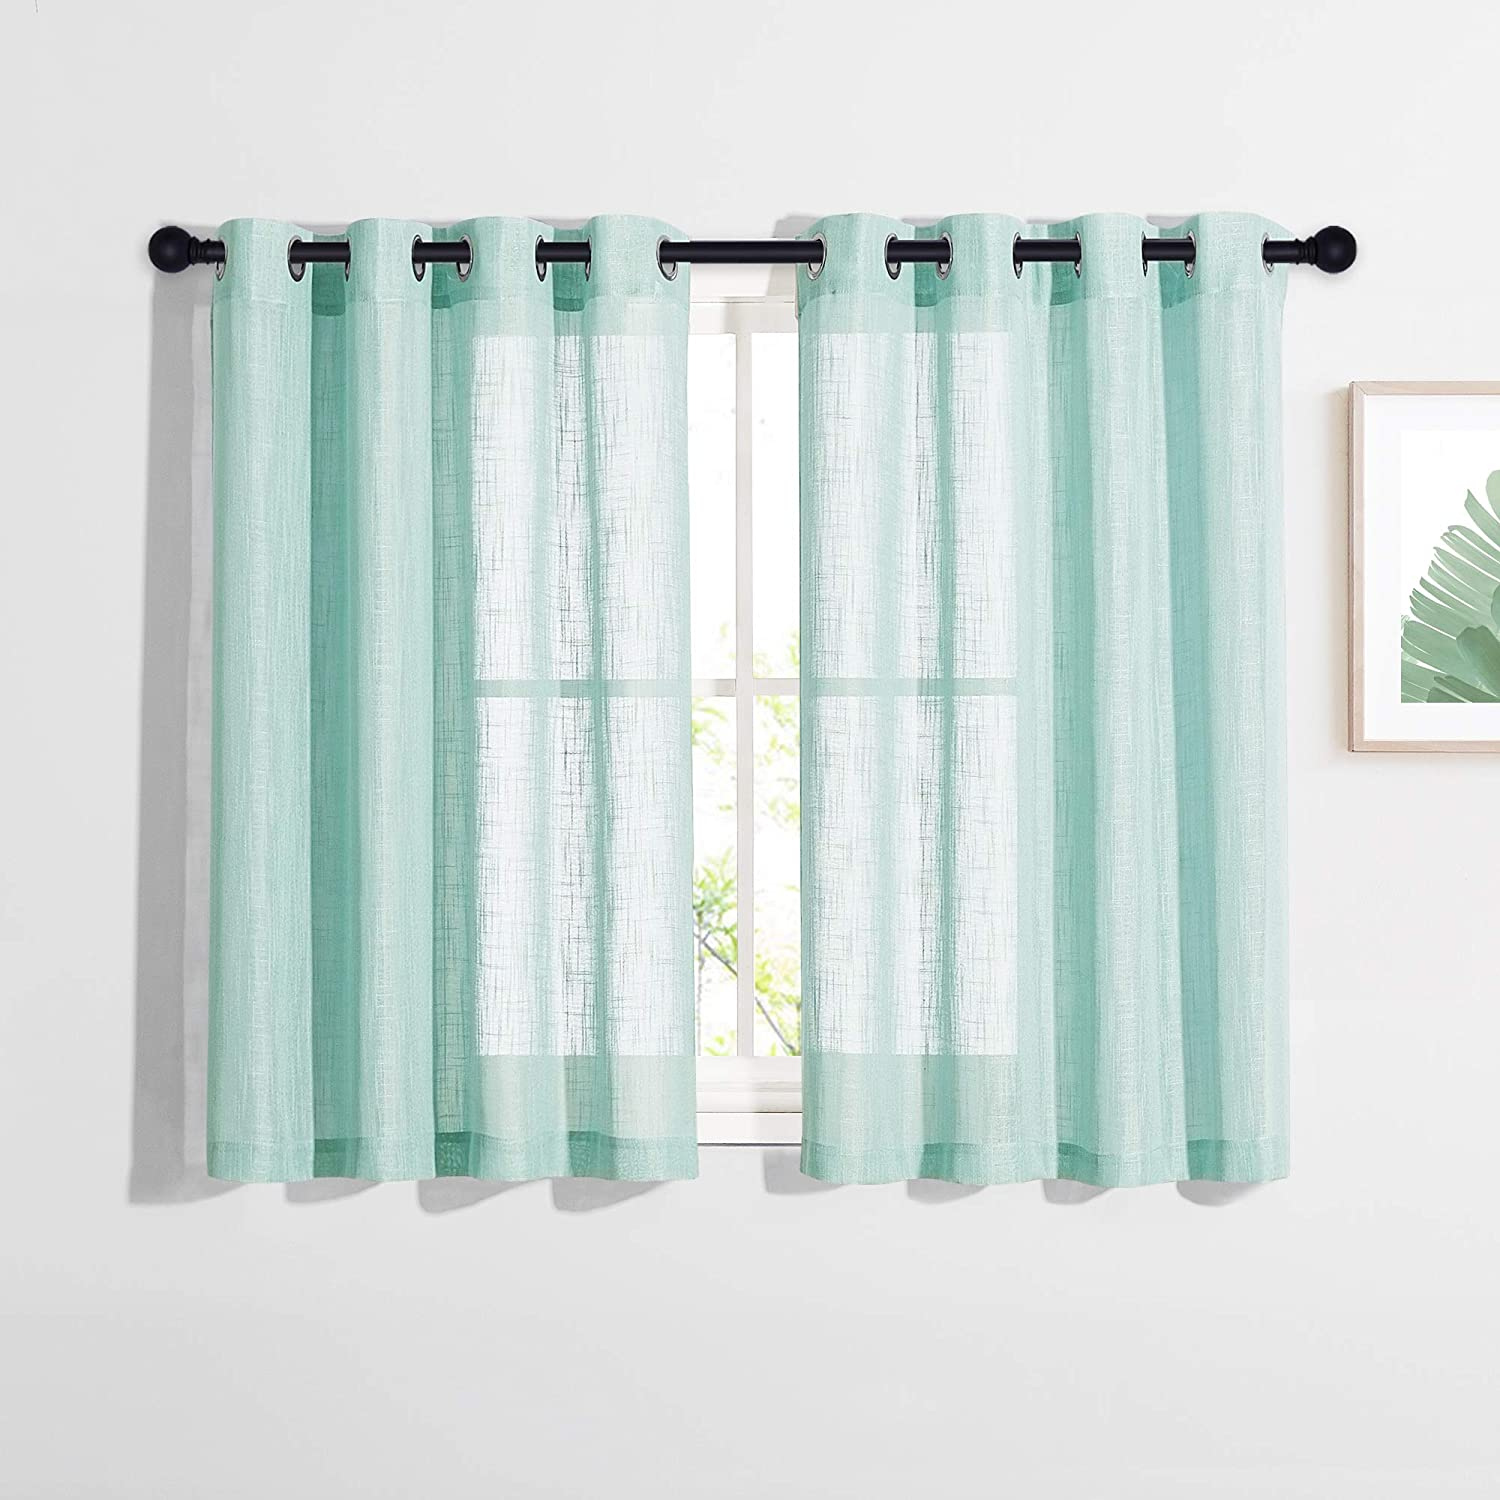 NICETOWN Rustic Faux Linen Voile Bedroom Sheer Curtains, Grommet Home Decoration Semi Sheer Privacy Window Treatments Panels for Children Room (Ocean Wave, 52 by 45 inches Long, 1 Pair)